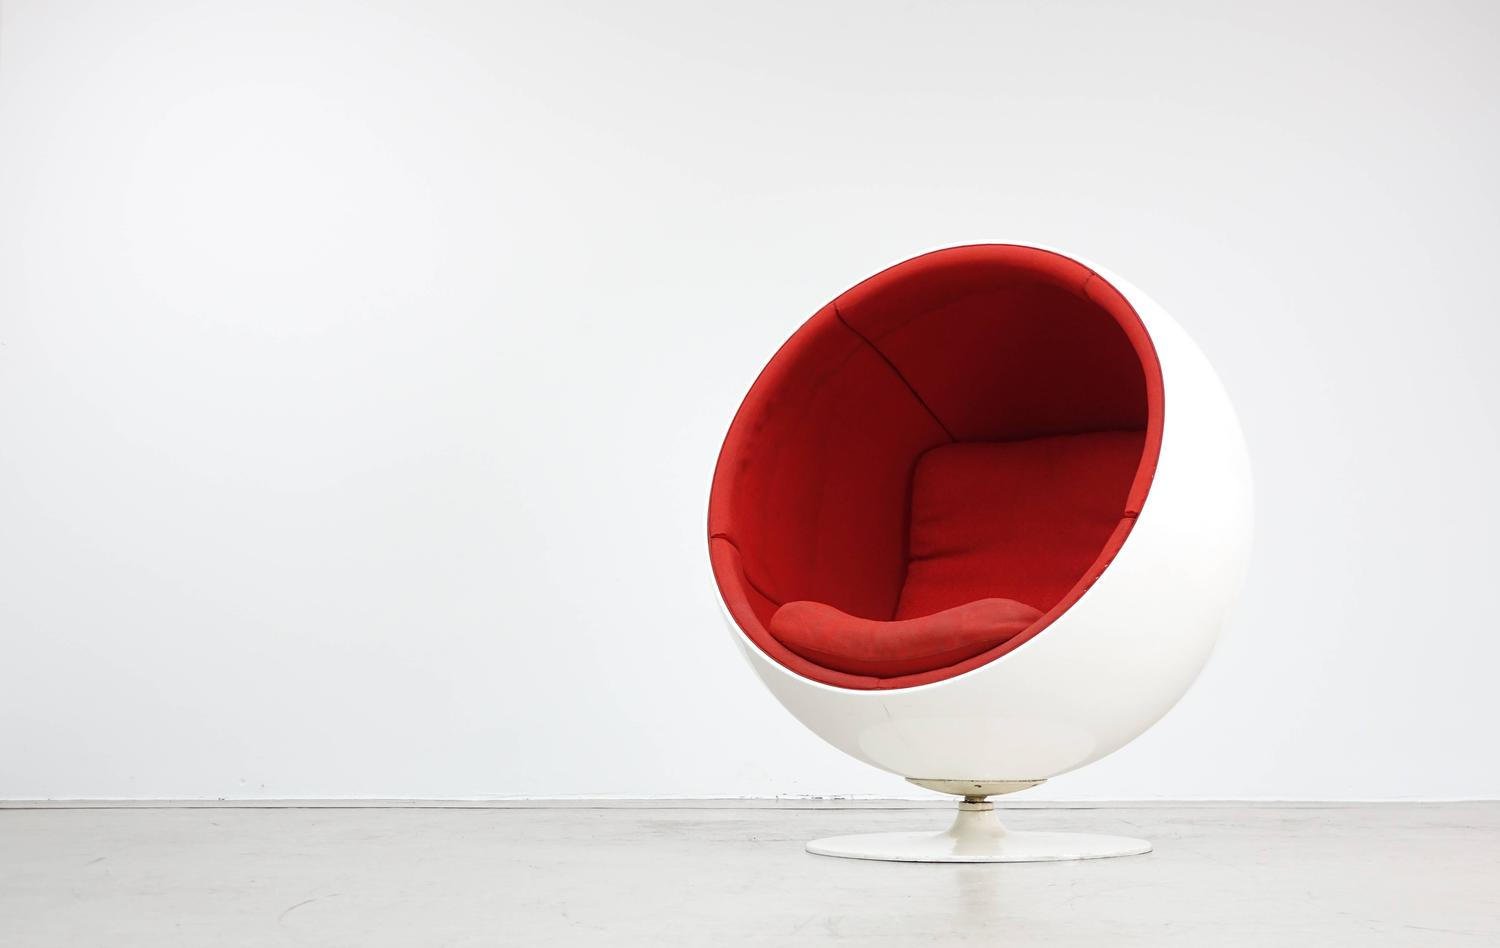 Ball chair by asko eero aarnio 1963 rare first edition at 1stdibs - Ball chair eero aarnio ...